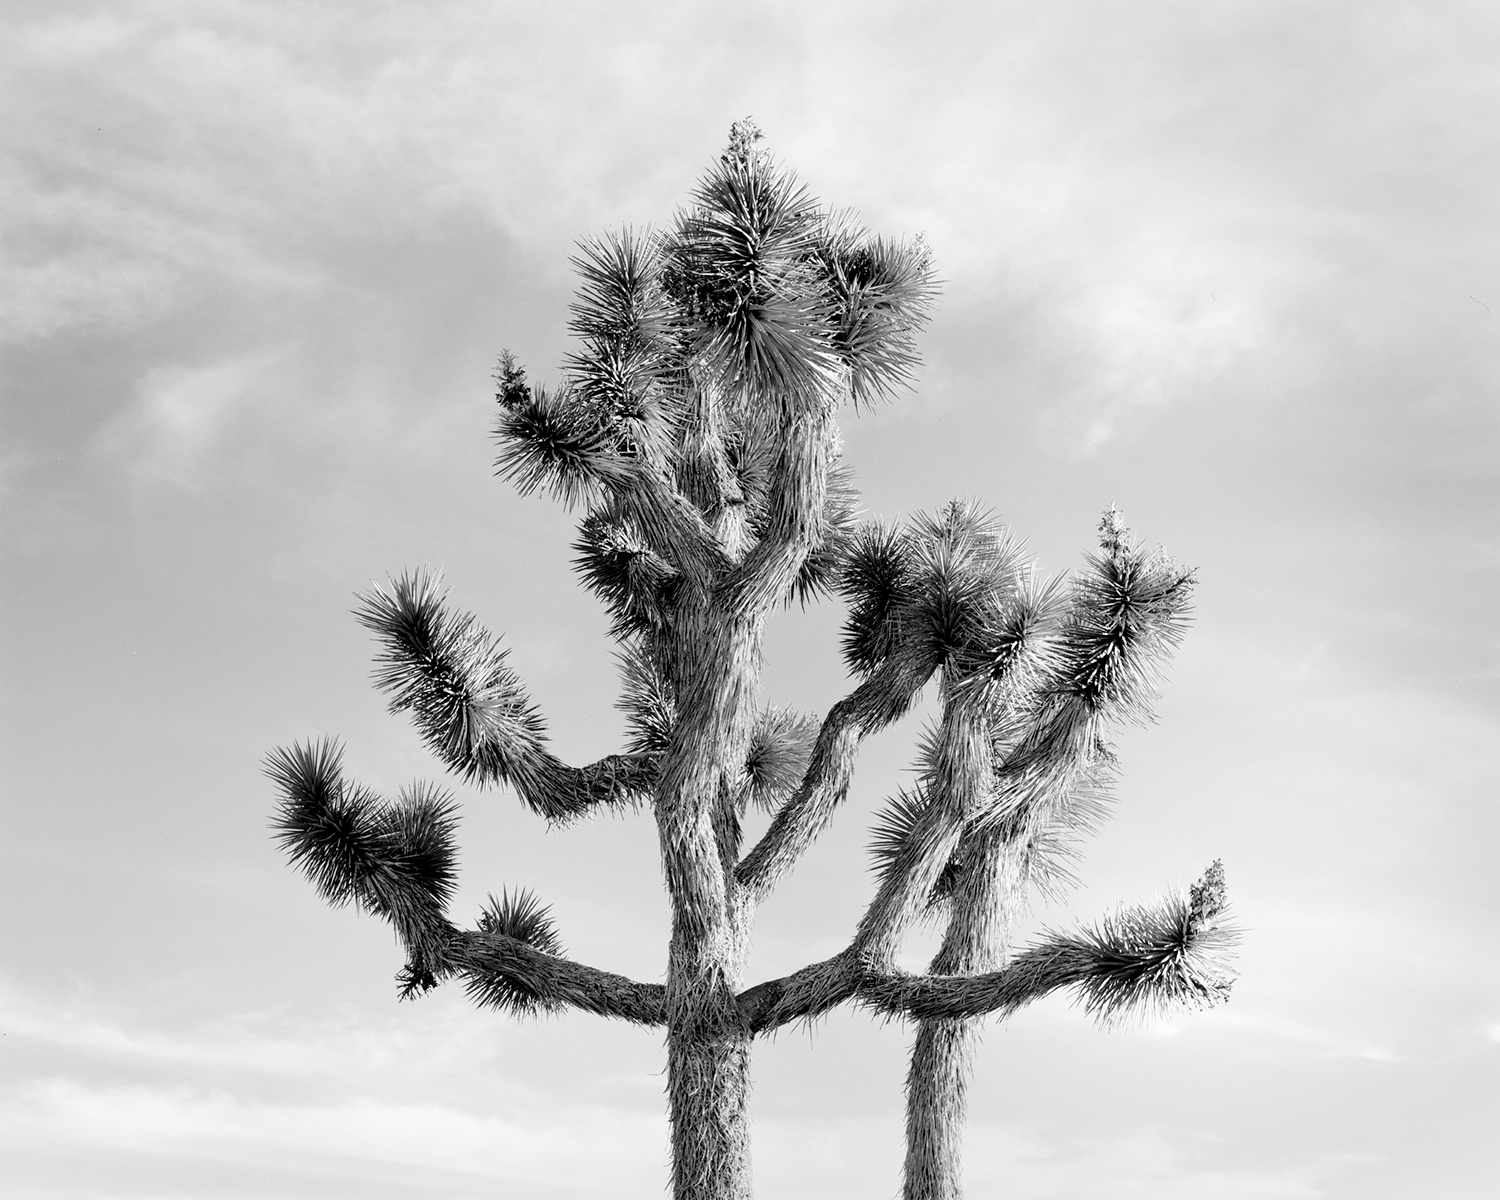 JOSHUA TREE IV